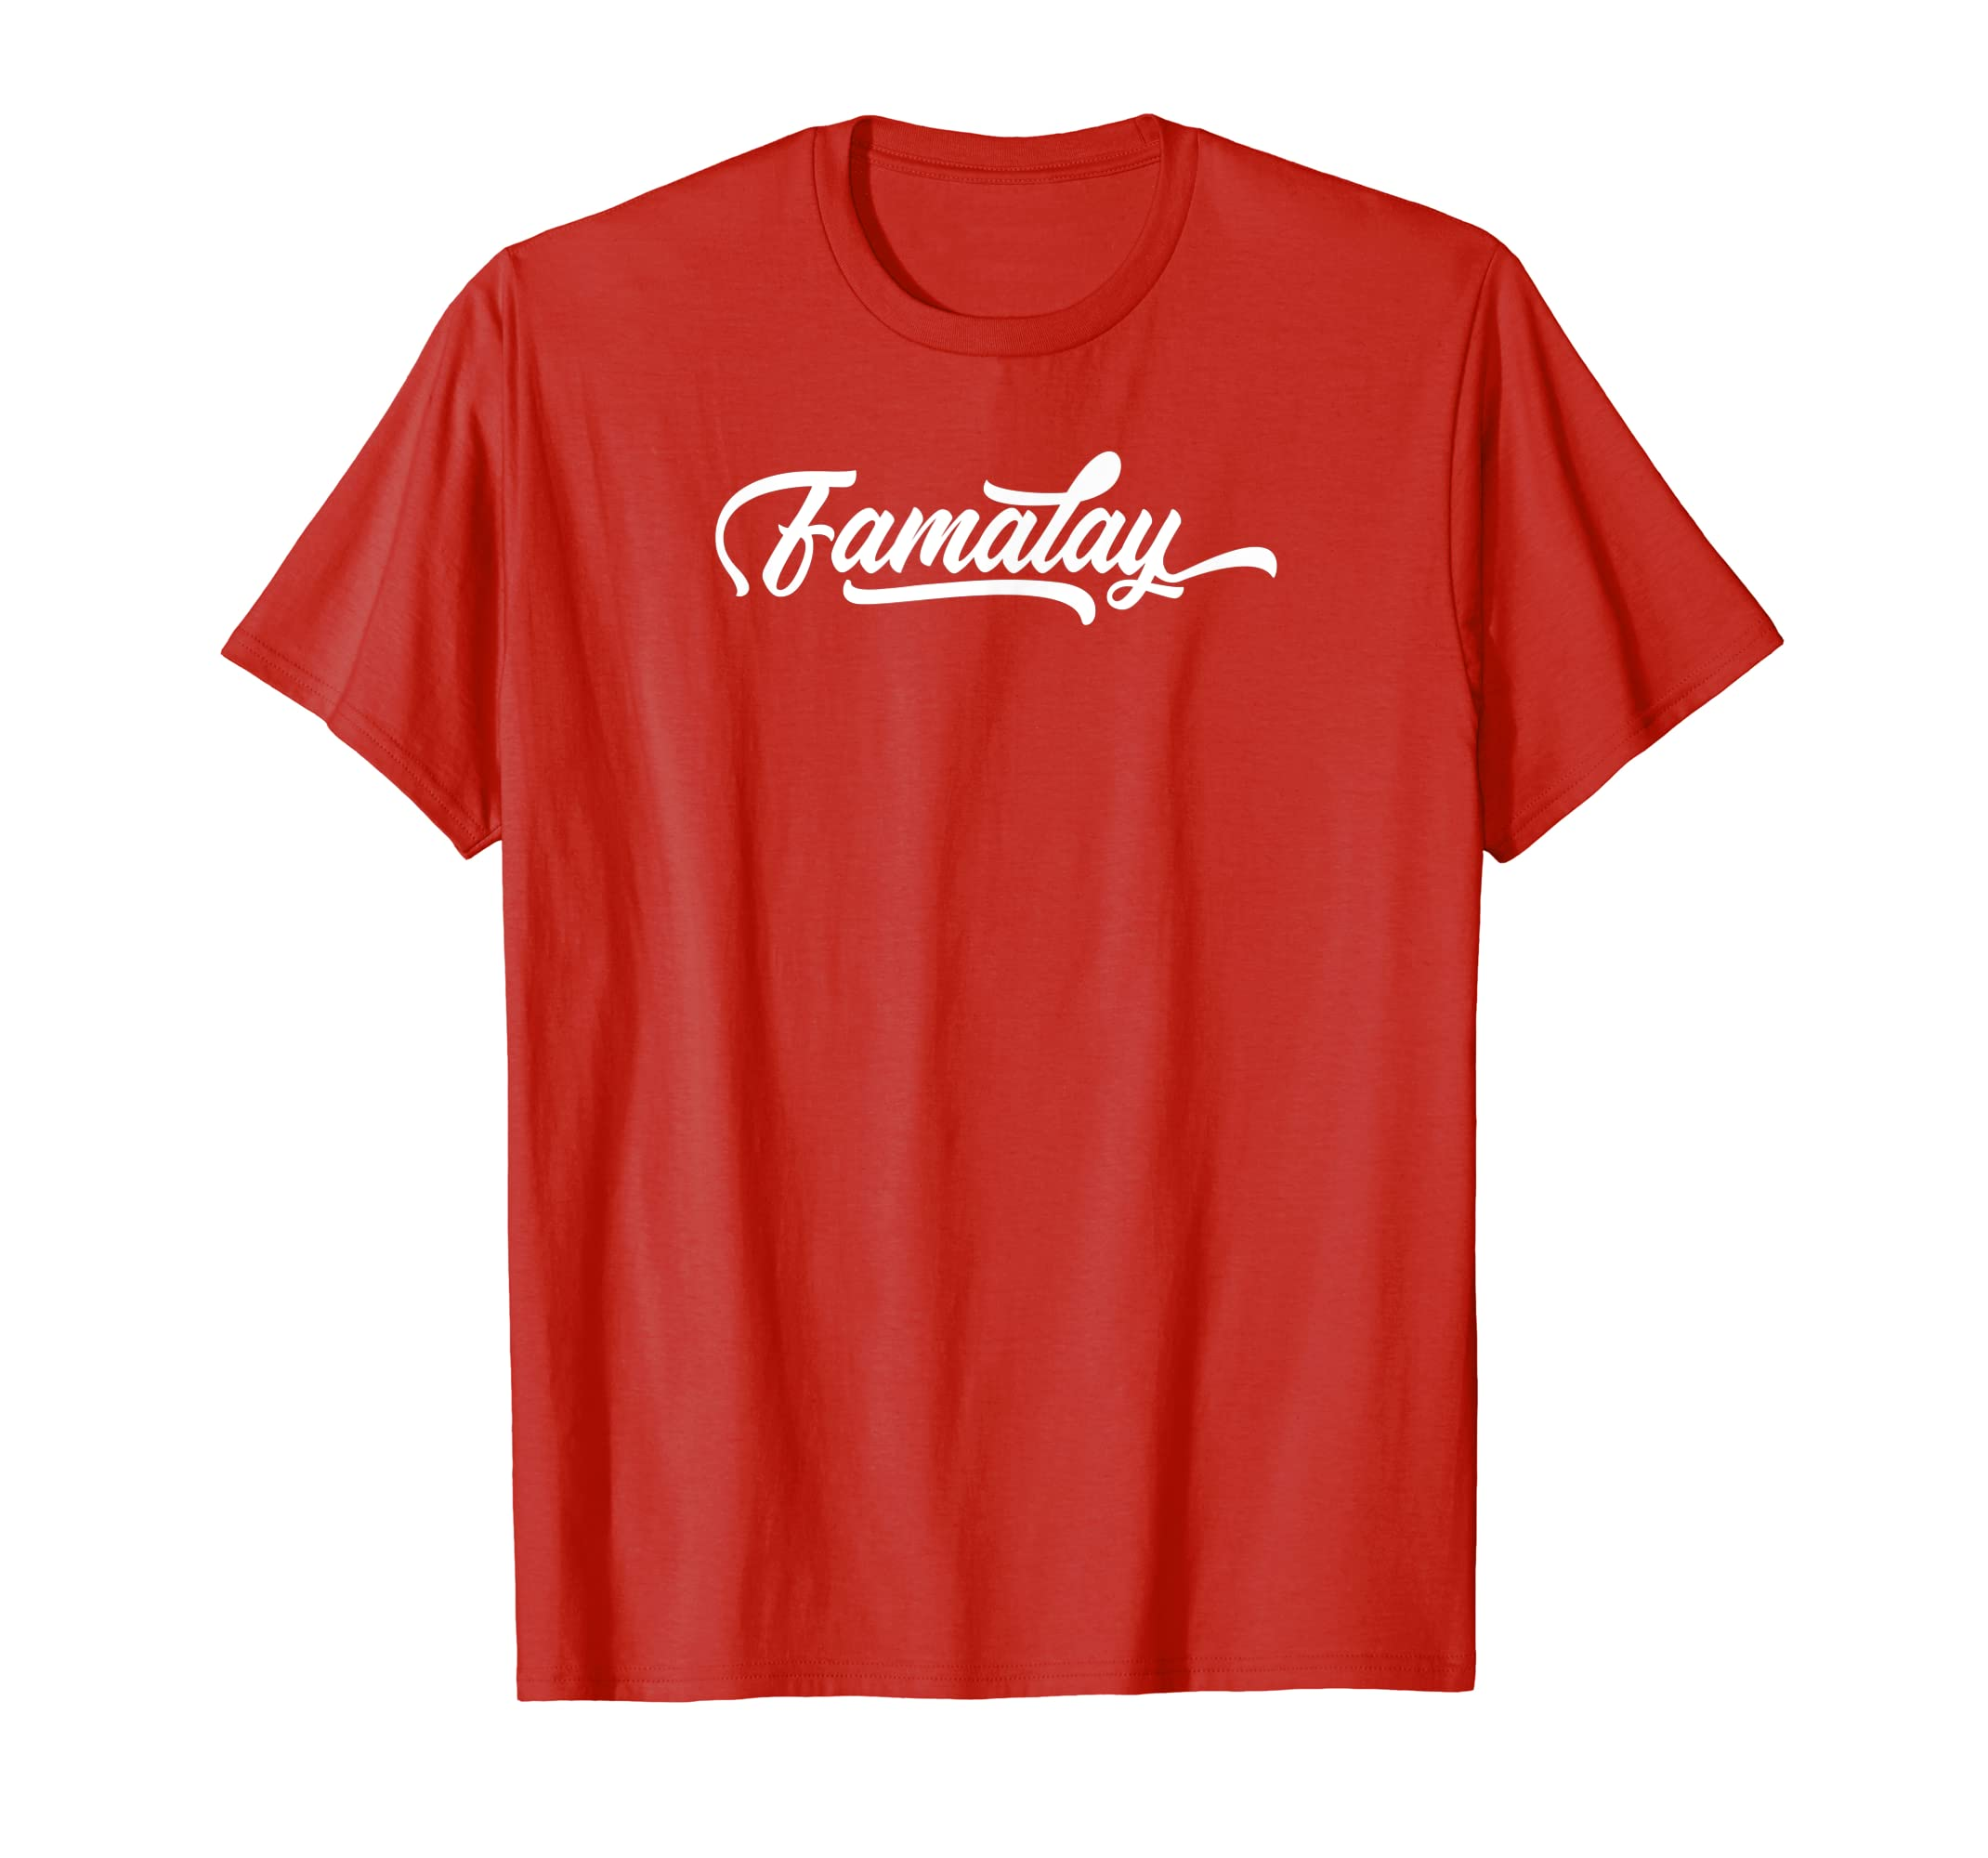 Amazon Com Trinidad Carnival T Shirts Famalay Clothing